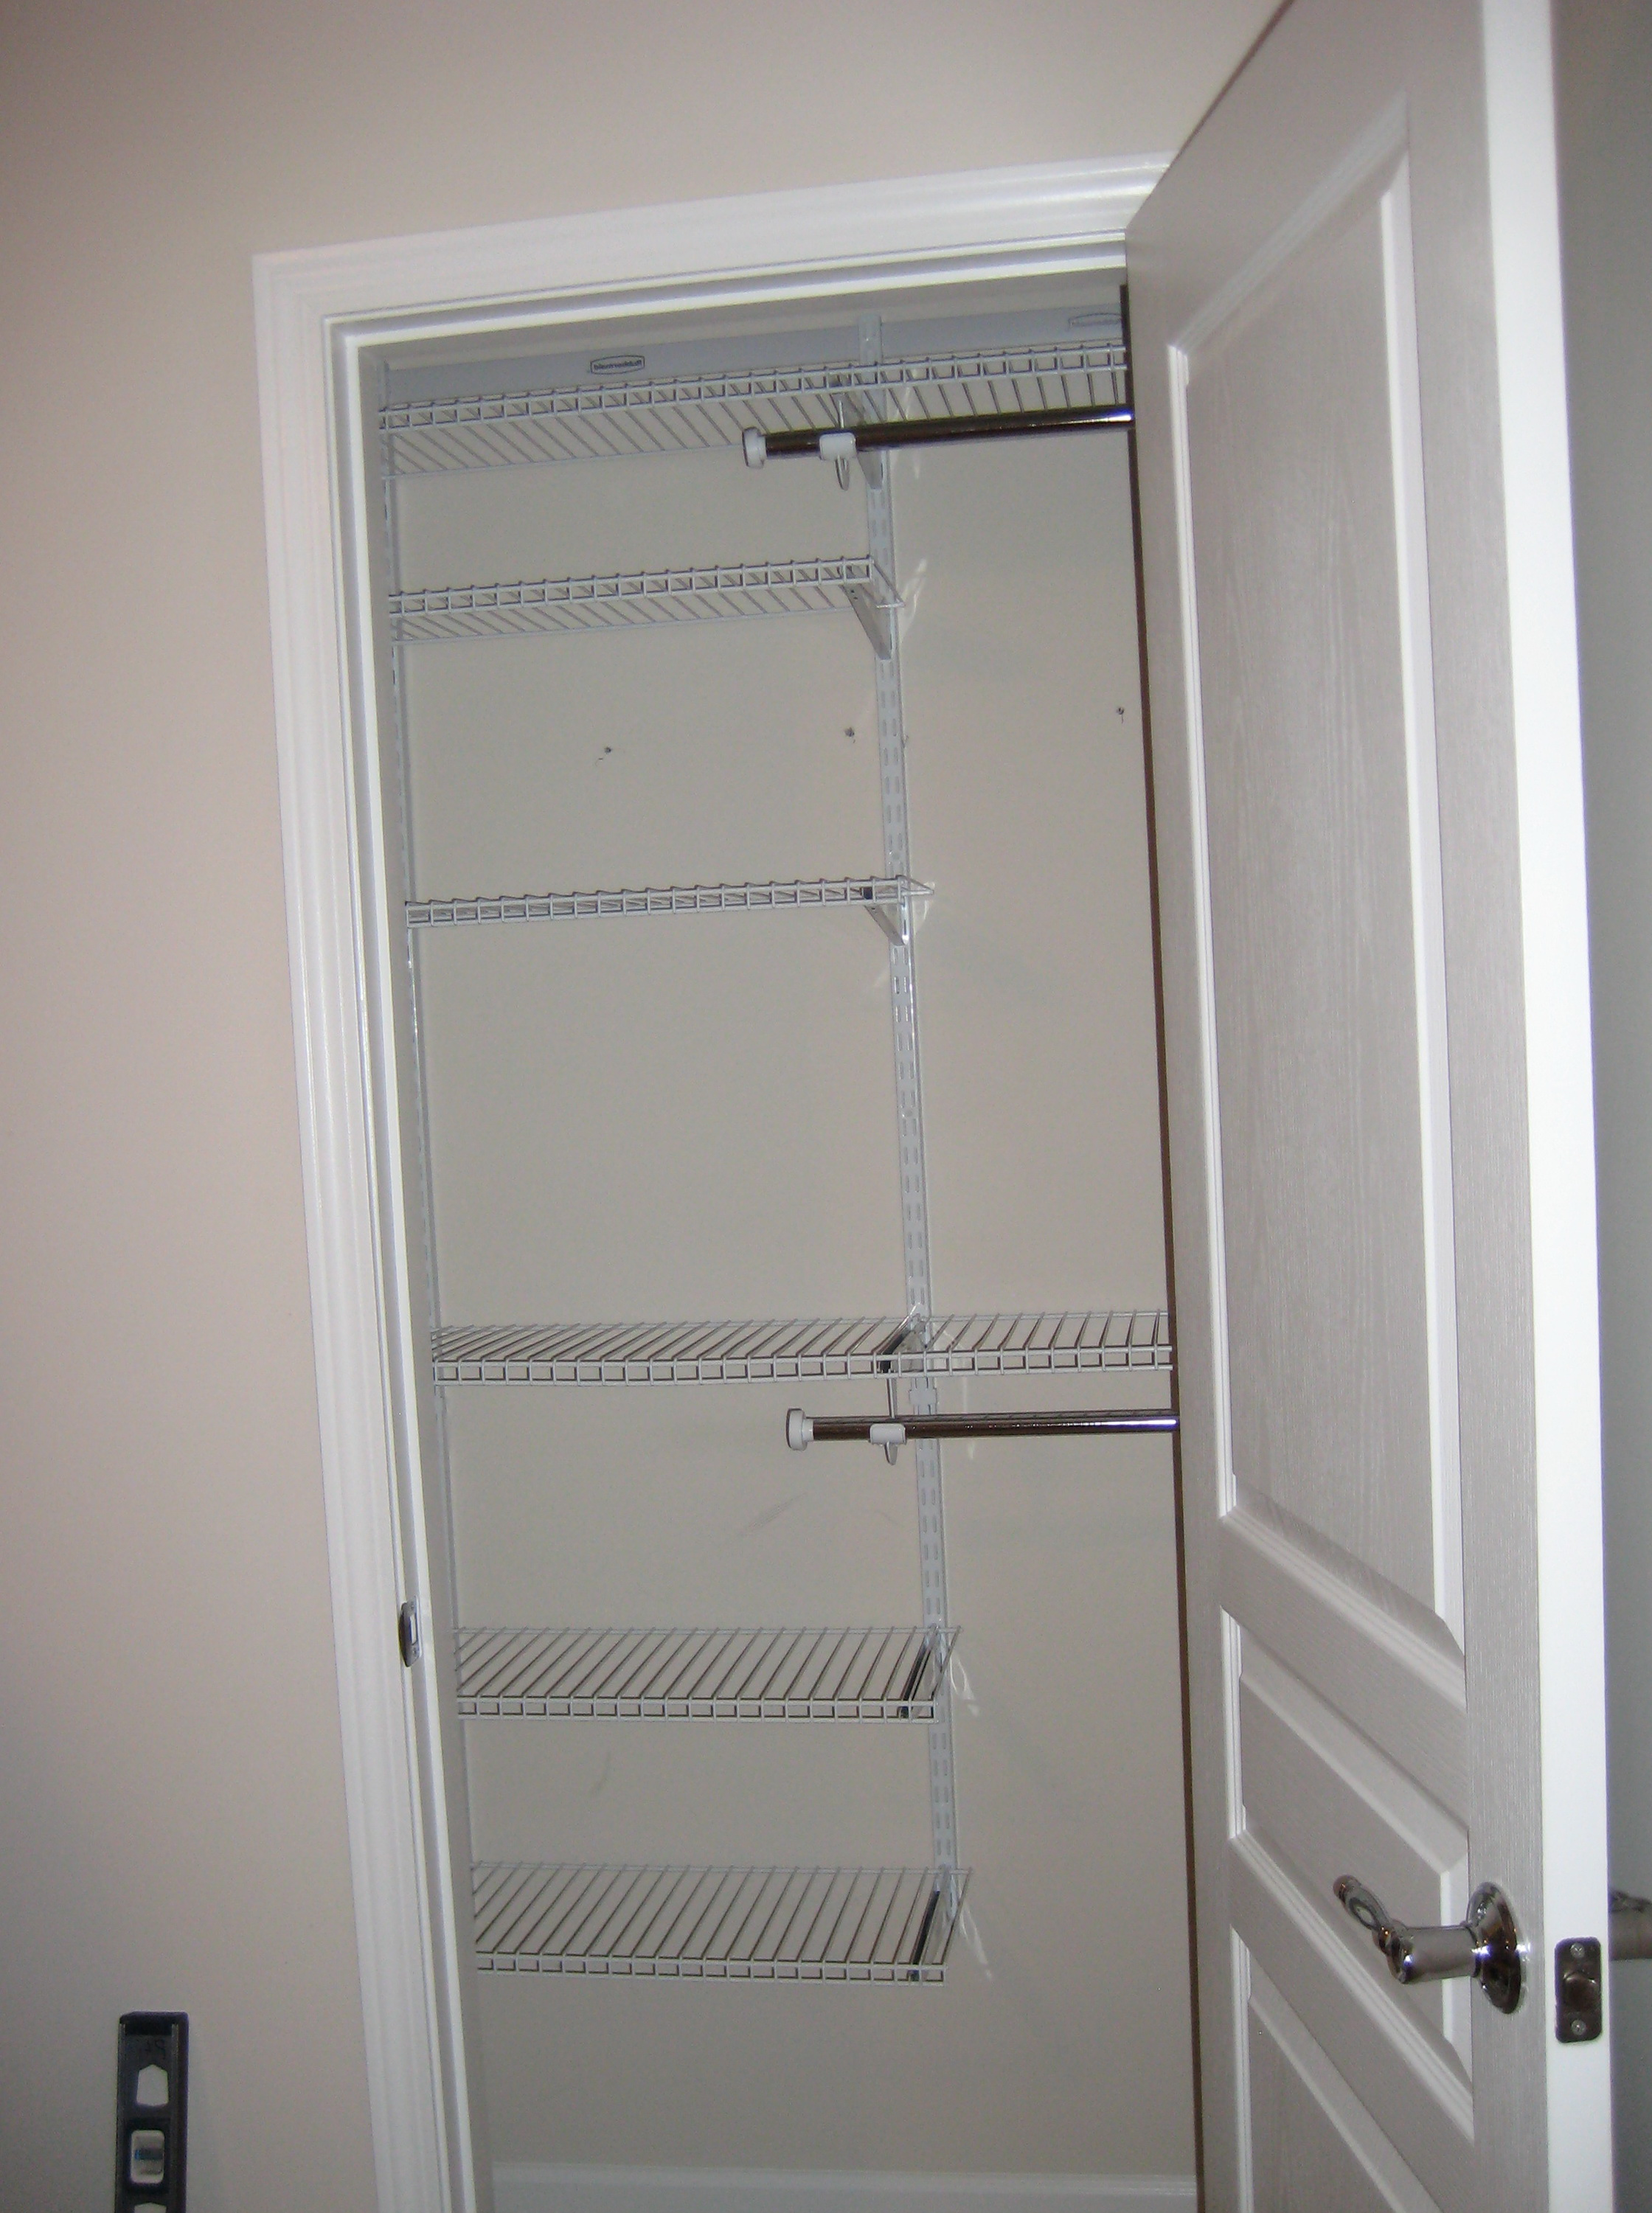 Rubbermaid Closet Shelving Instructions